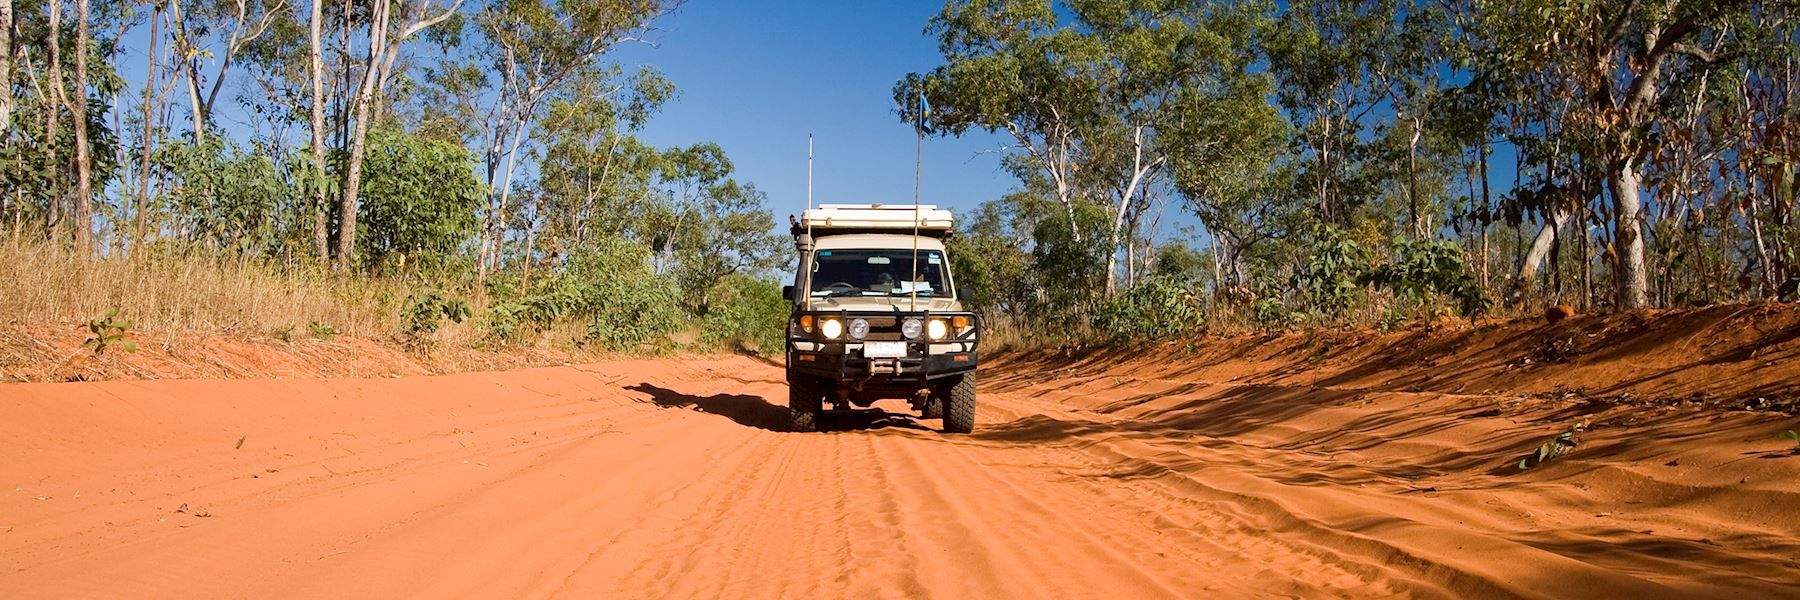 Experts in tailor-made vacations to Australia & New Zealand